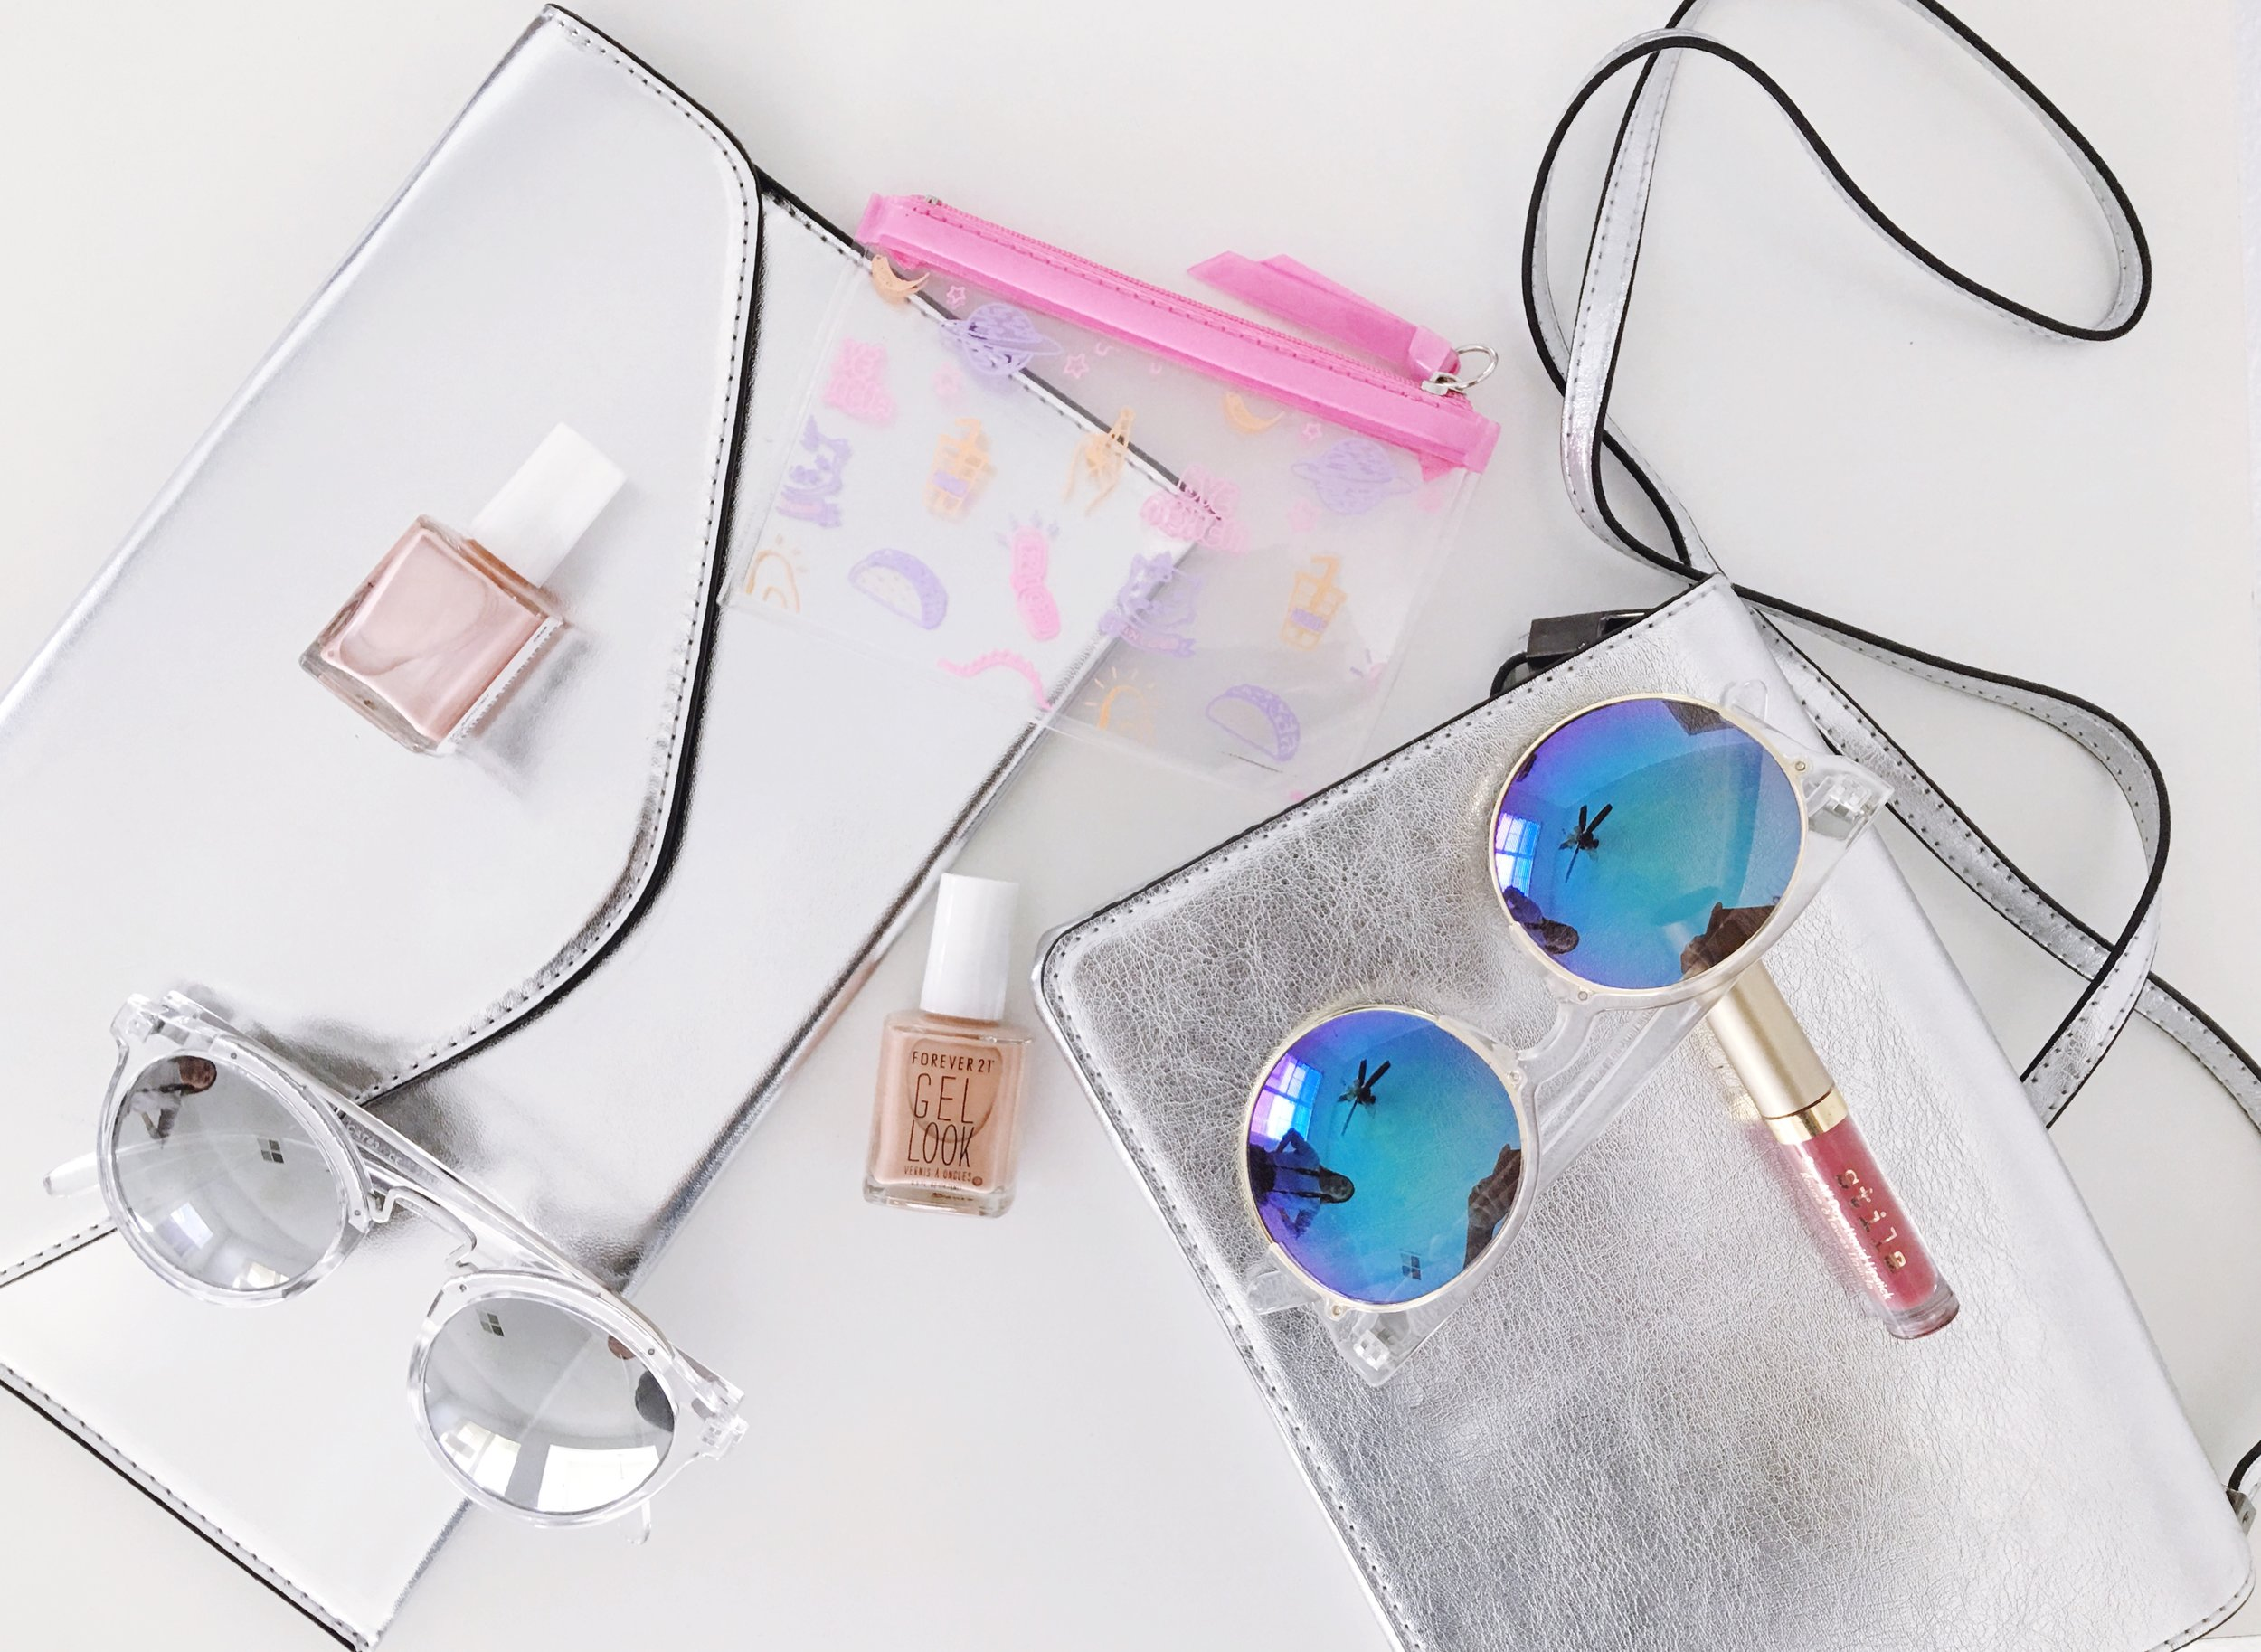 Spring Essential Accessories. Metallic Shoulder Bags and Sunglasses with Clear frames and  Polarized lenses. Pastel Nail Polish in Millennial Pink and Patina Stila All Day Liquid Lipstick.